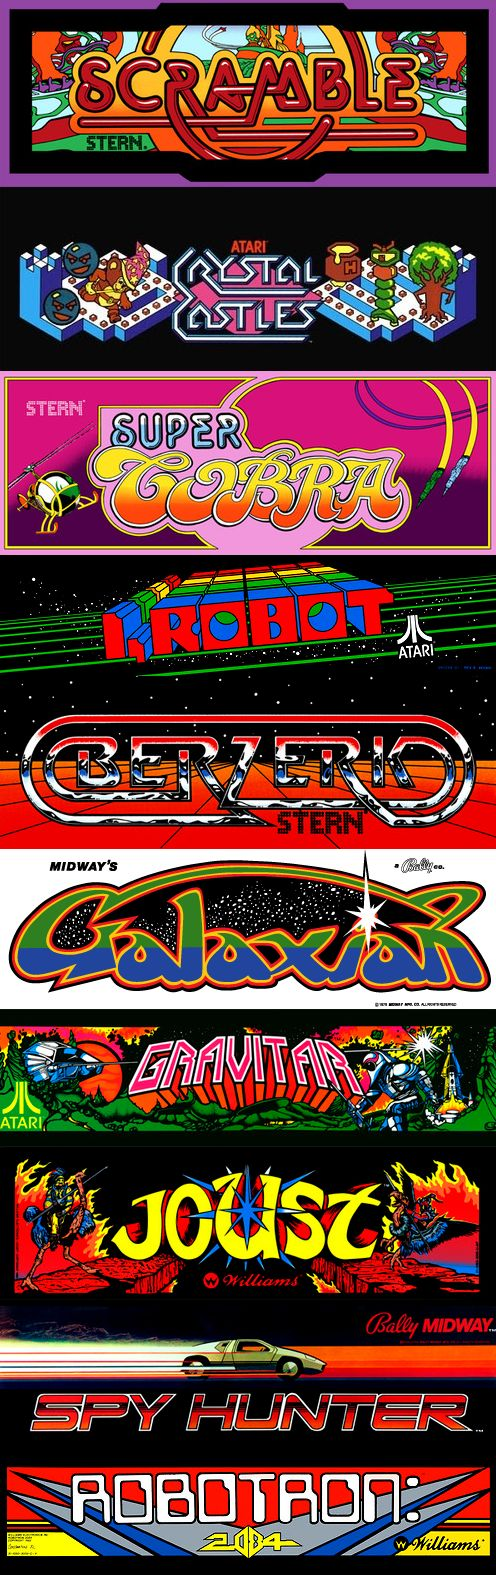 These are the games I grew up on in the arcade.